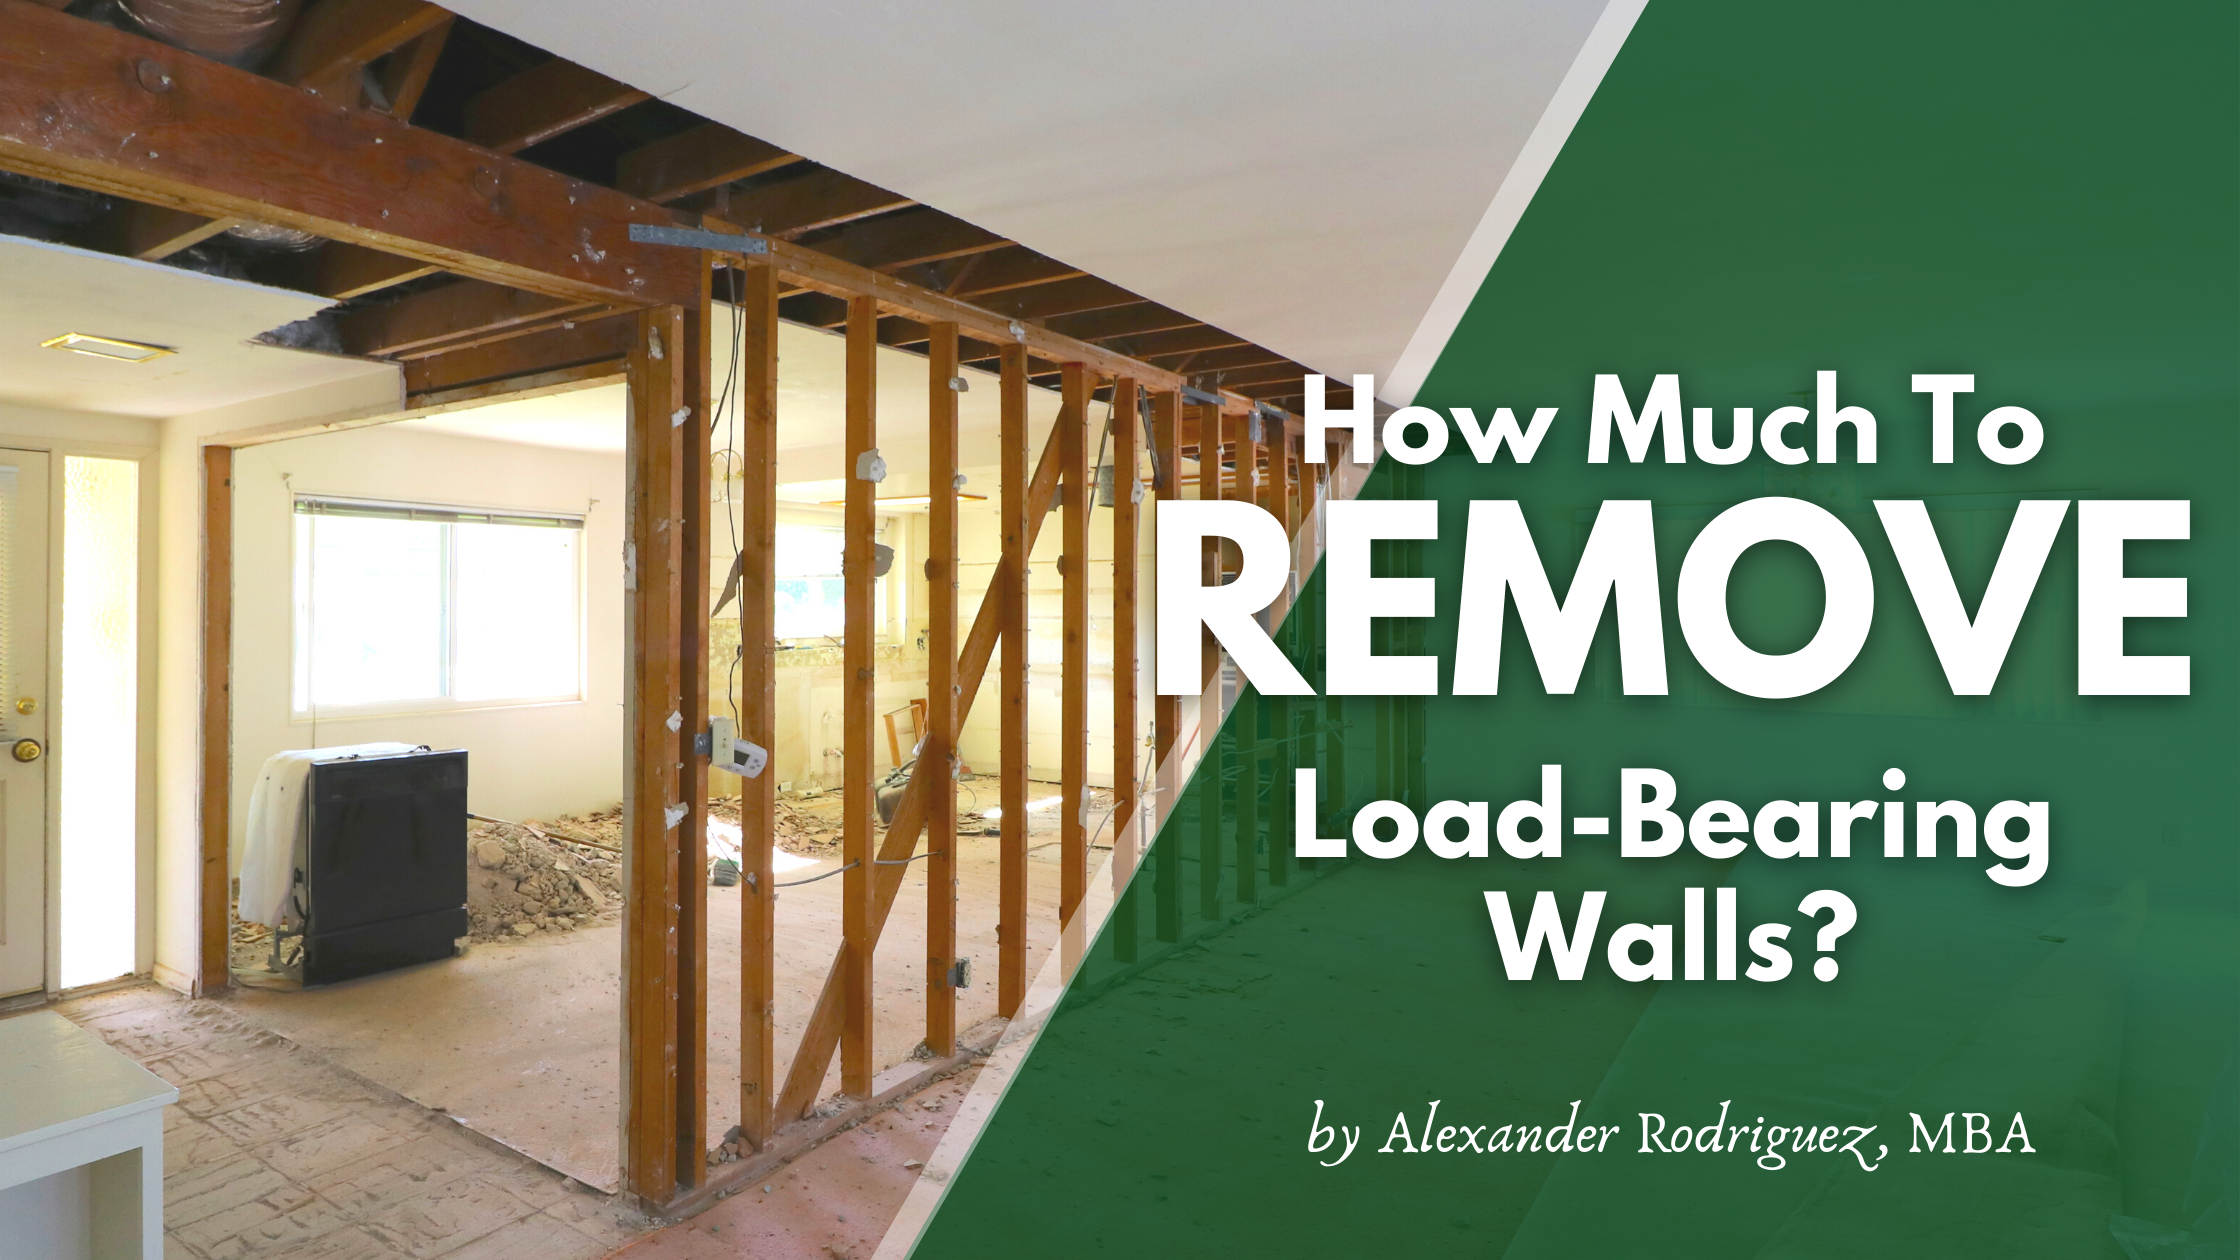 How Much Does it Cost to Remove a Wall?